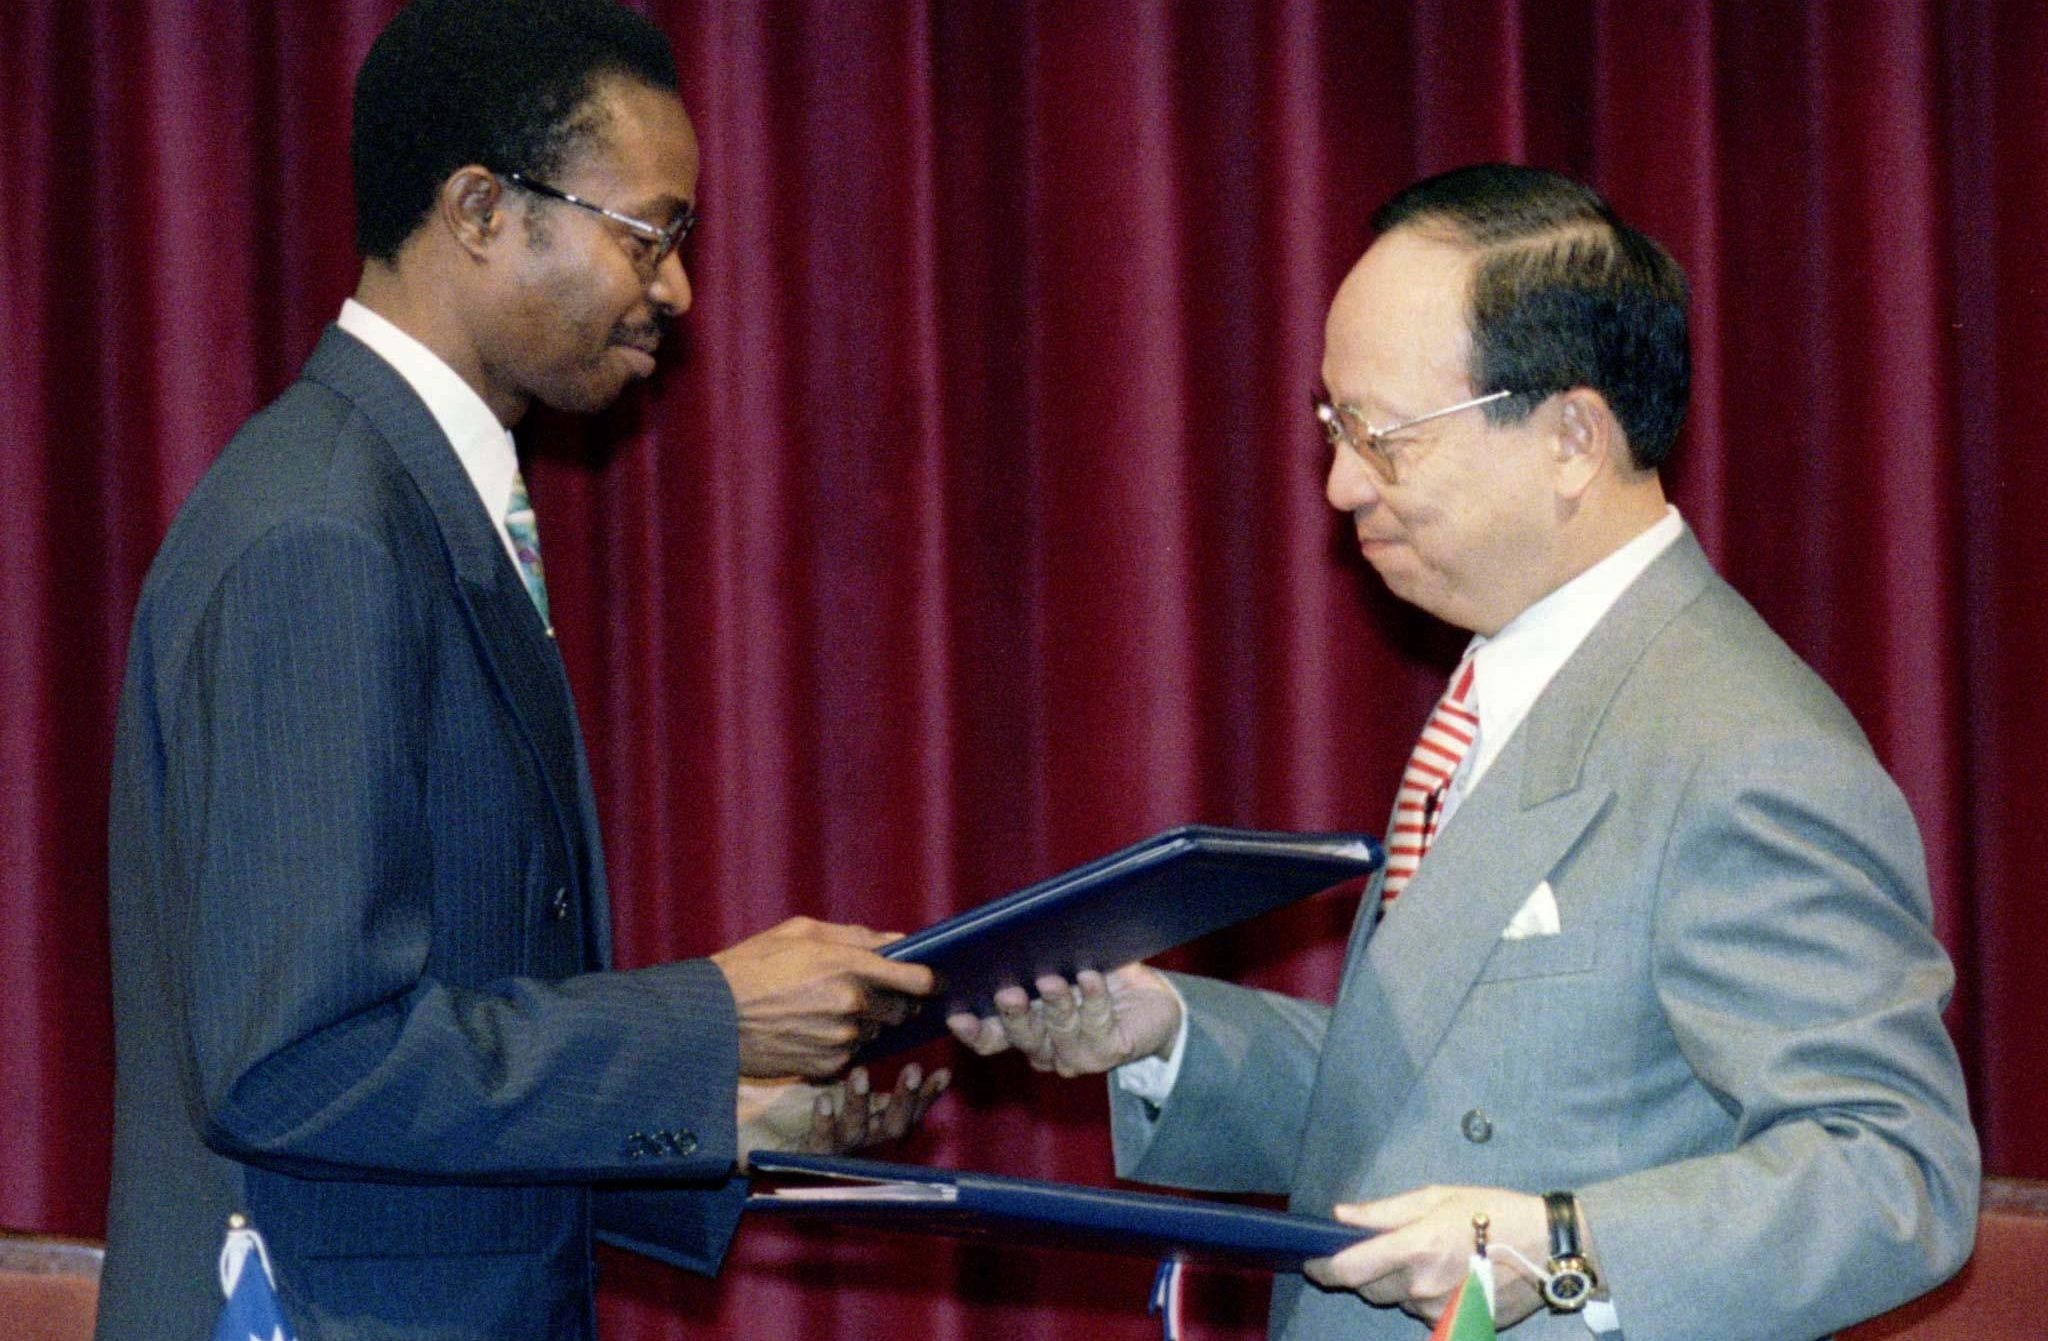 Taiwan's foreign minister John Chang and his Sao Tome counterpart M. Homero Salvaterra exchange copies of a joint communique during a ceremony in Taipei on May 6, declaring the establishment of diplomatic relations between the two countries. The announcement, which was sure to anger rival China, brings to 31 the countries that maintain official relations with Taiwan, but that number would fall back to 30 at the end of 1997 when South Africa switches diplomatic recognition to Beijing.  TAIWAN SAOTOME TIES - RTR3IMW